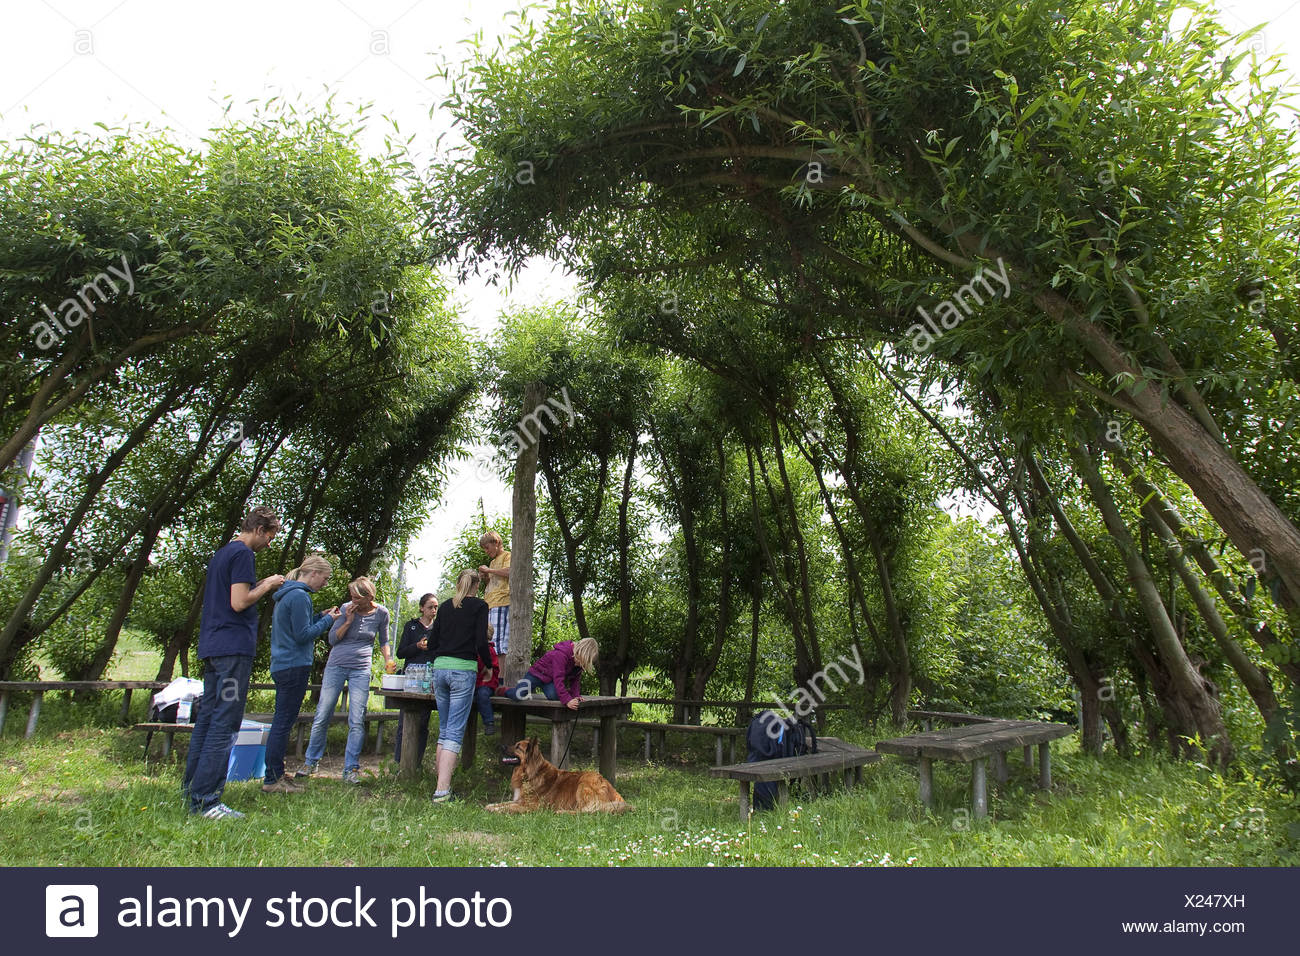 resting place surrounded by growed willow cuttings, Germany - Stock Image